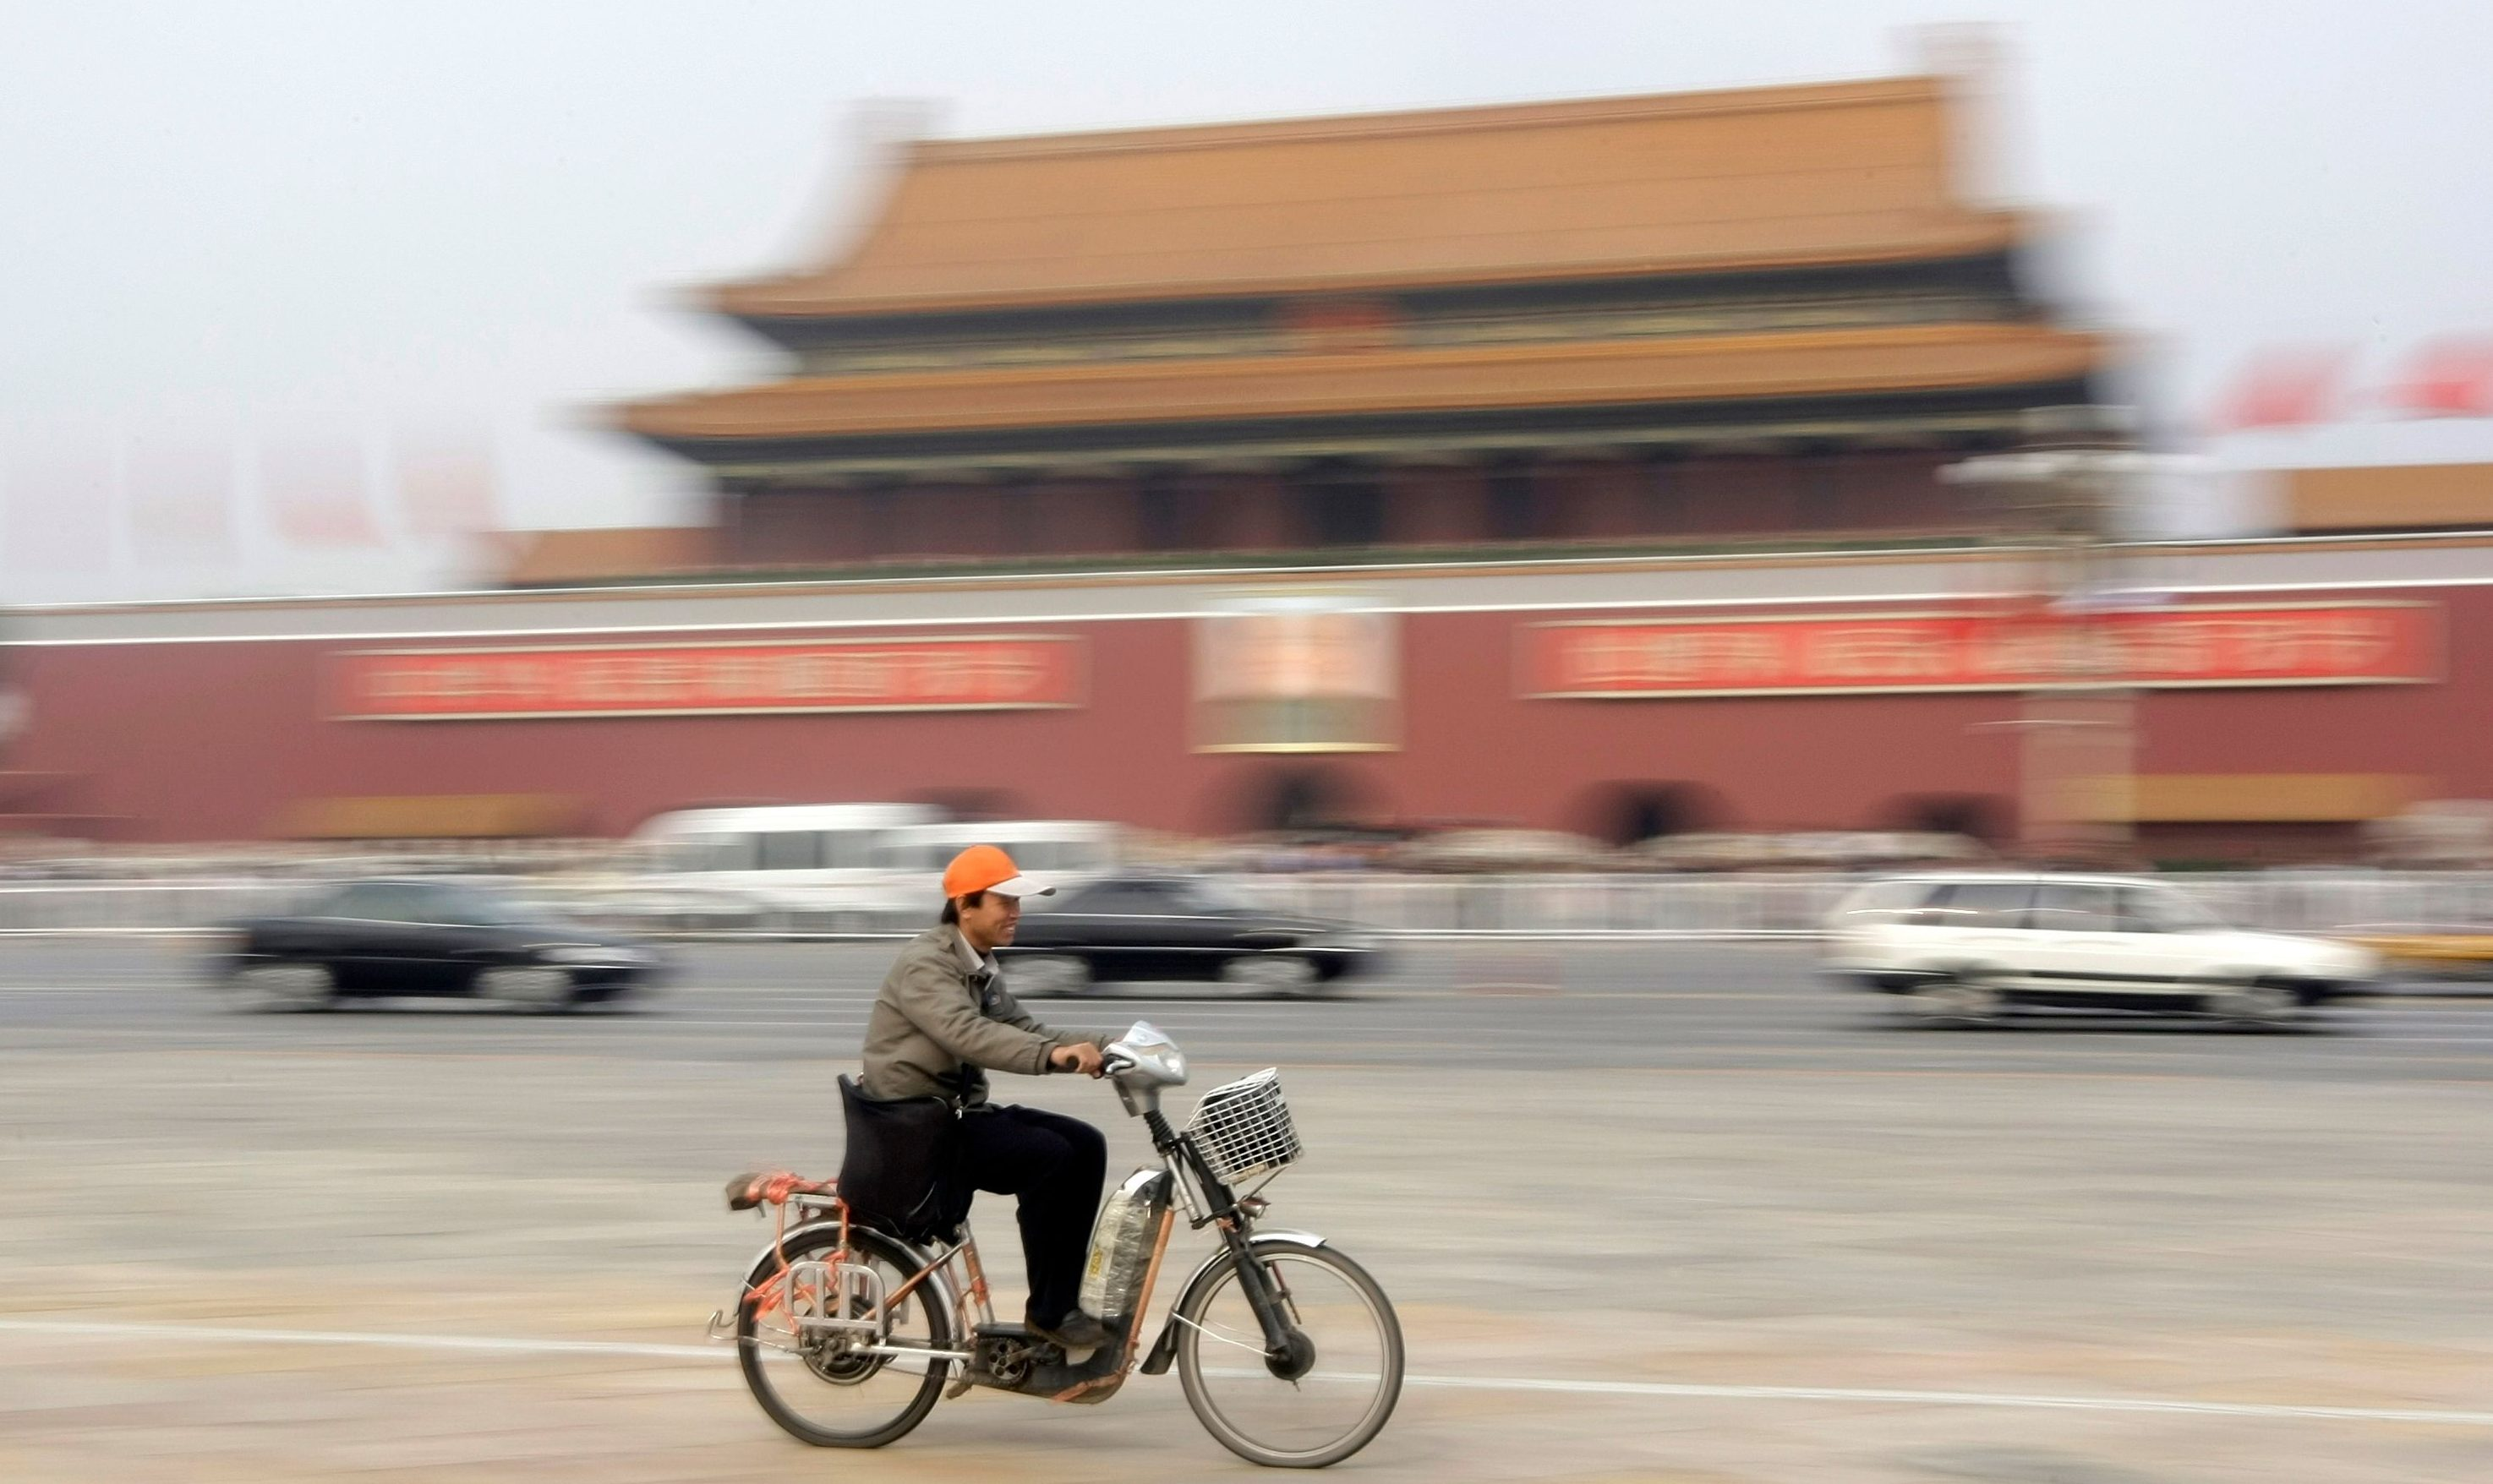 A man rides an electric bicycle past Beijing's Tiananmen Gate, October 21, 2008.